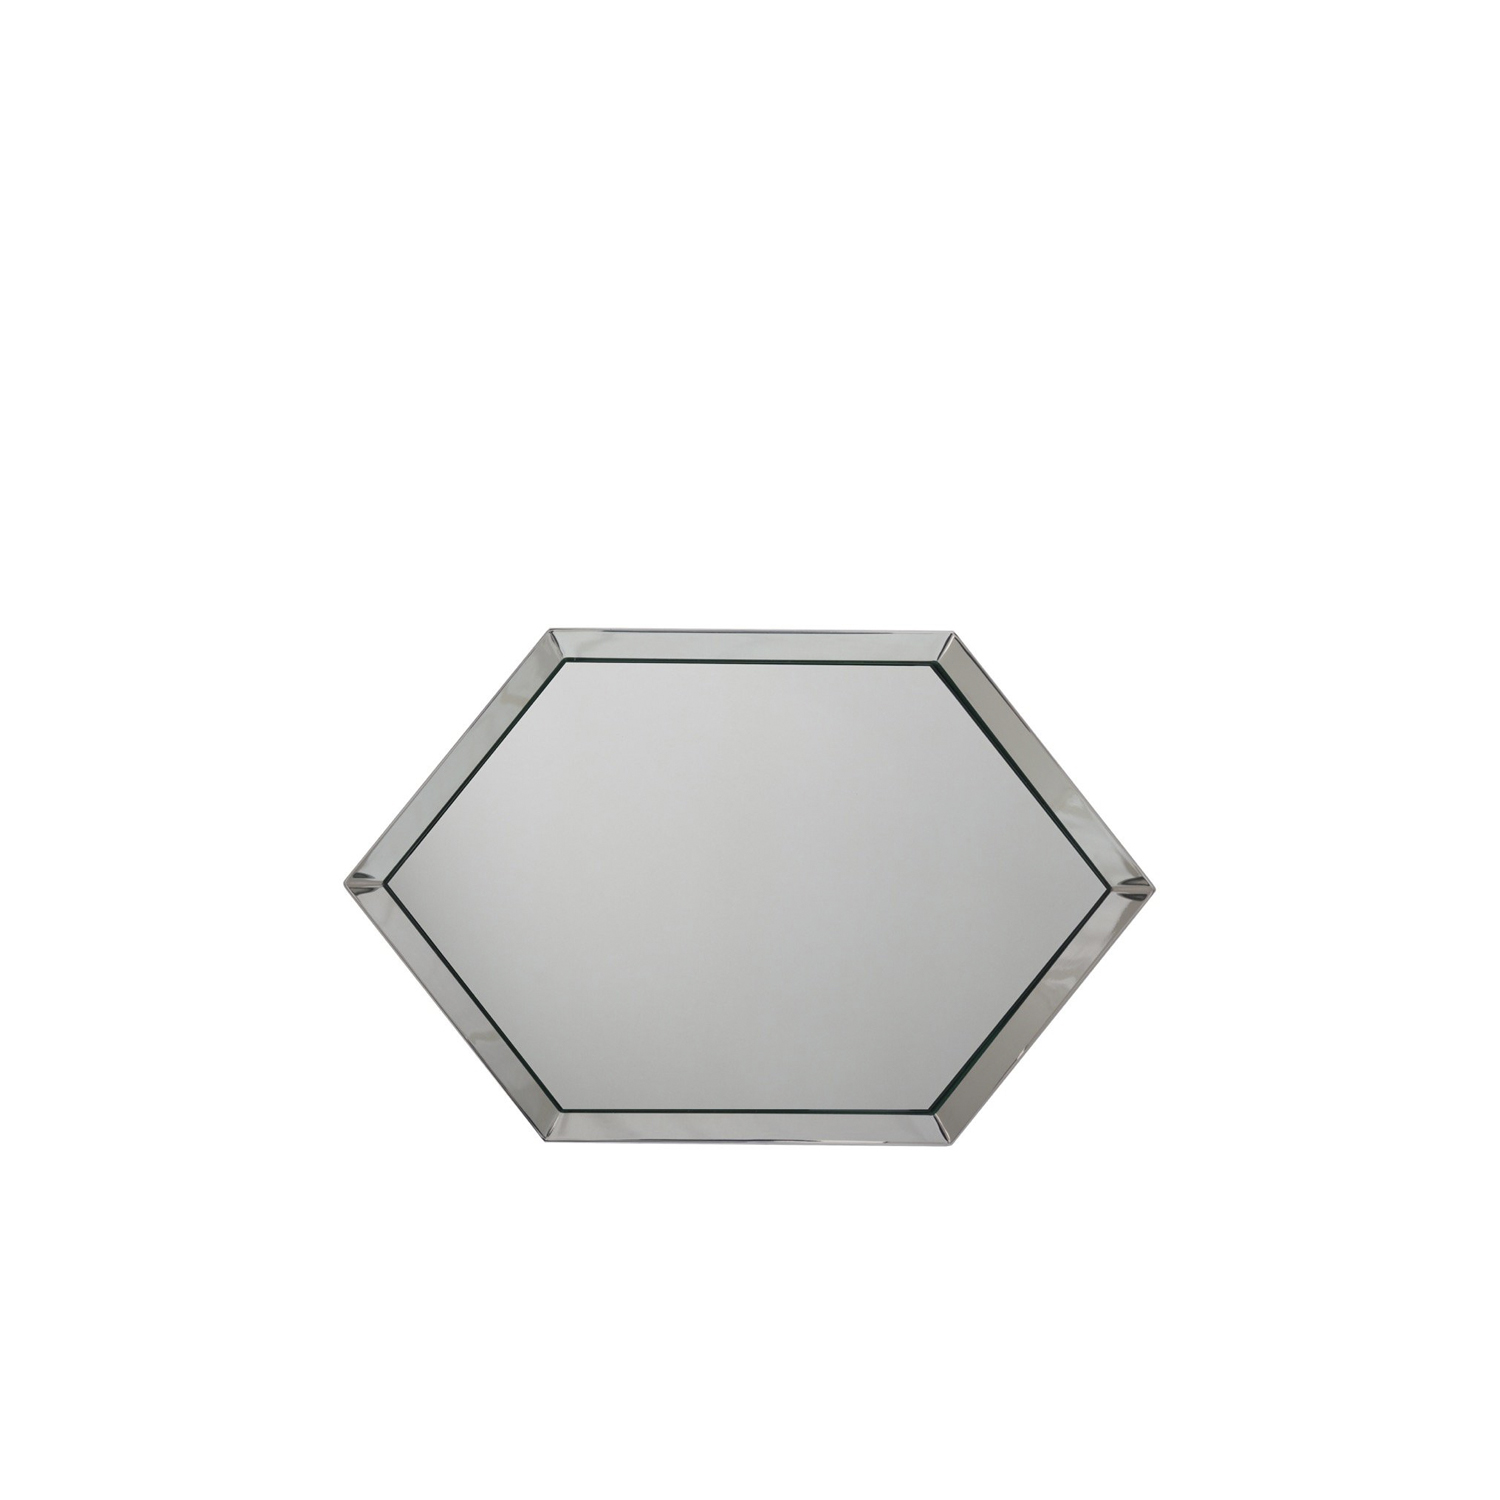 Hexagonal Mirror Tray - This unique design object combines the shine of silver with the magical effect of the mirror.